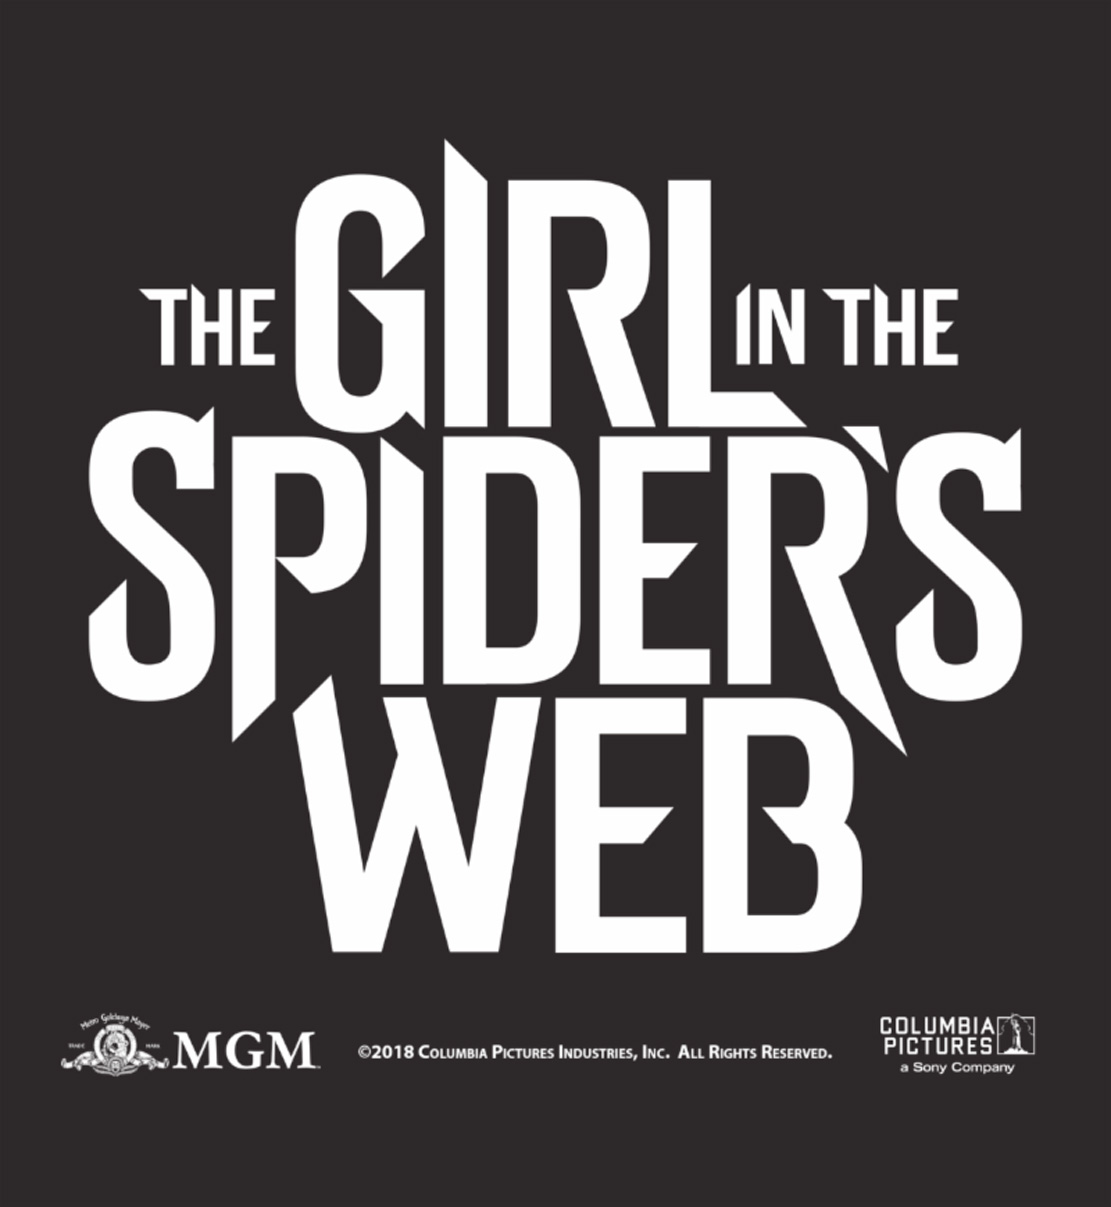 the-girl-in-the-spiders-web_logo